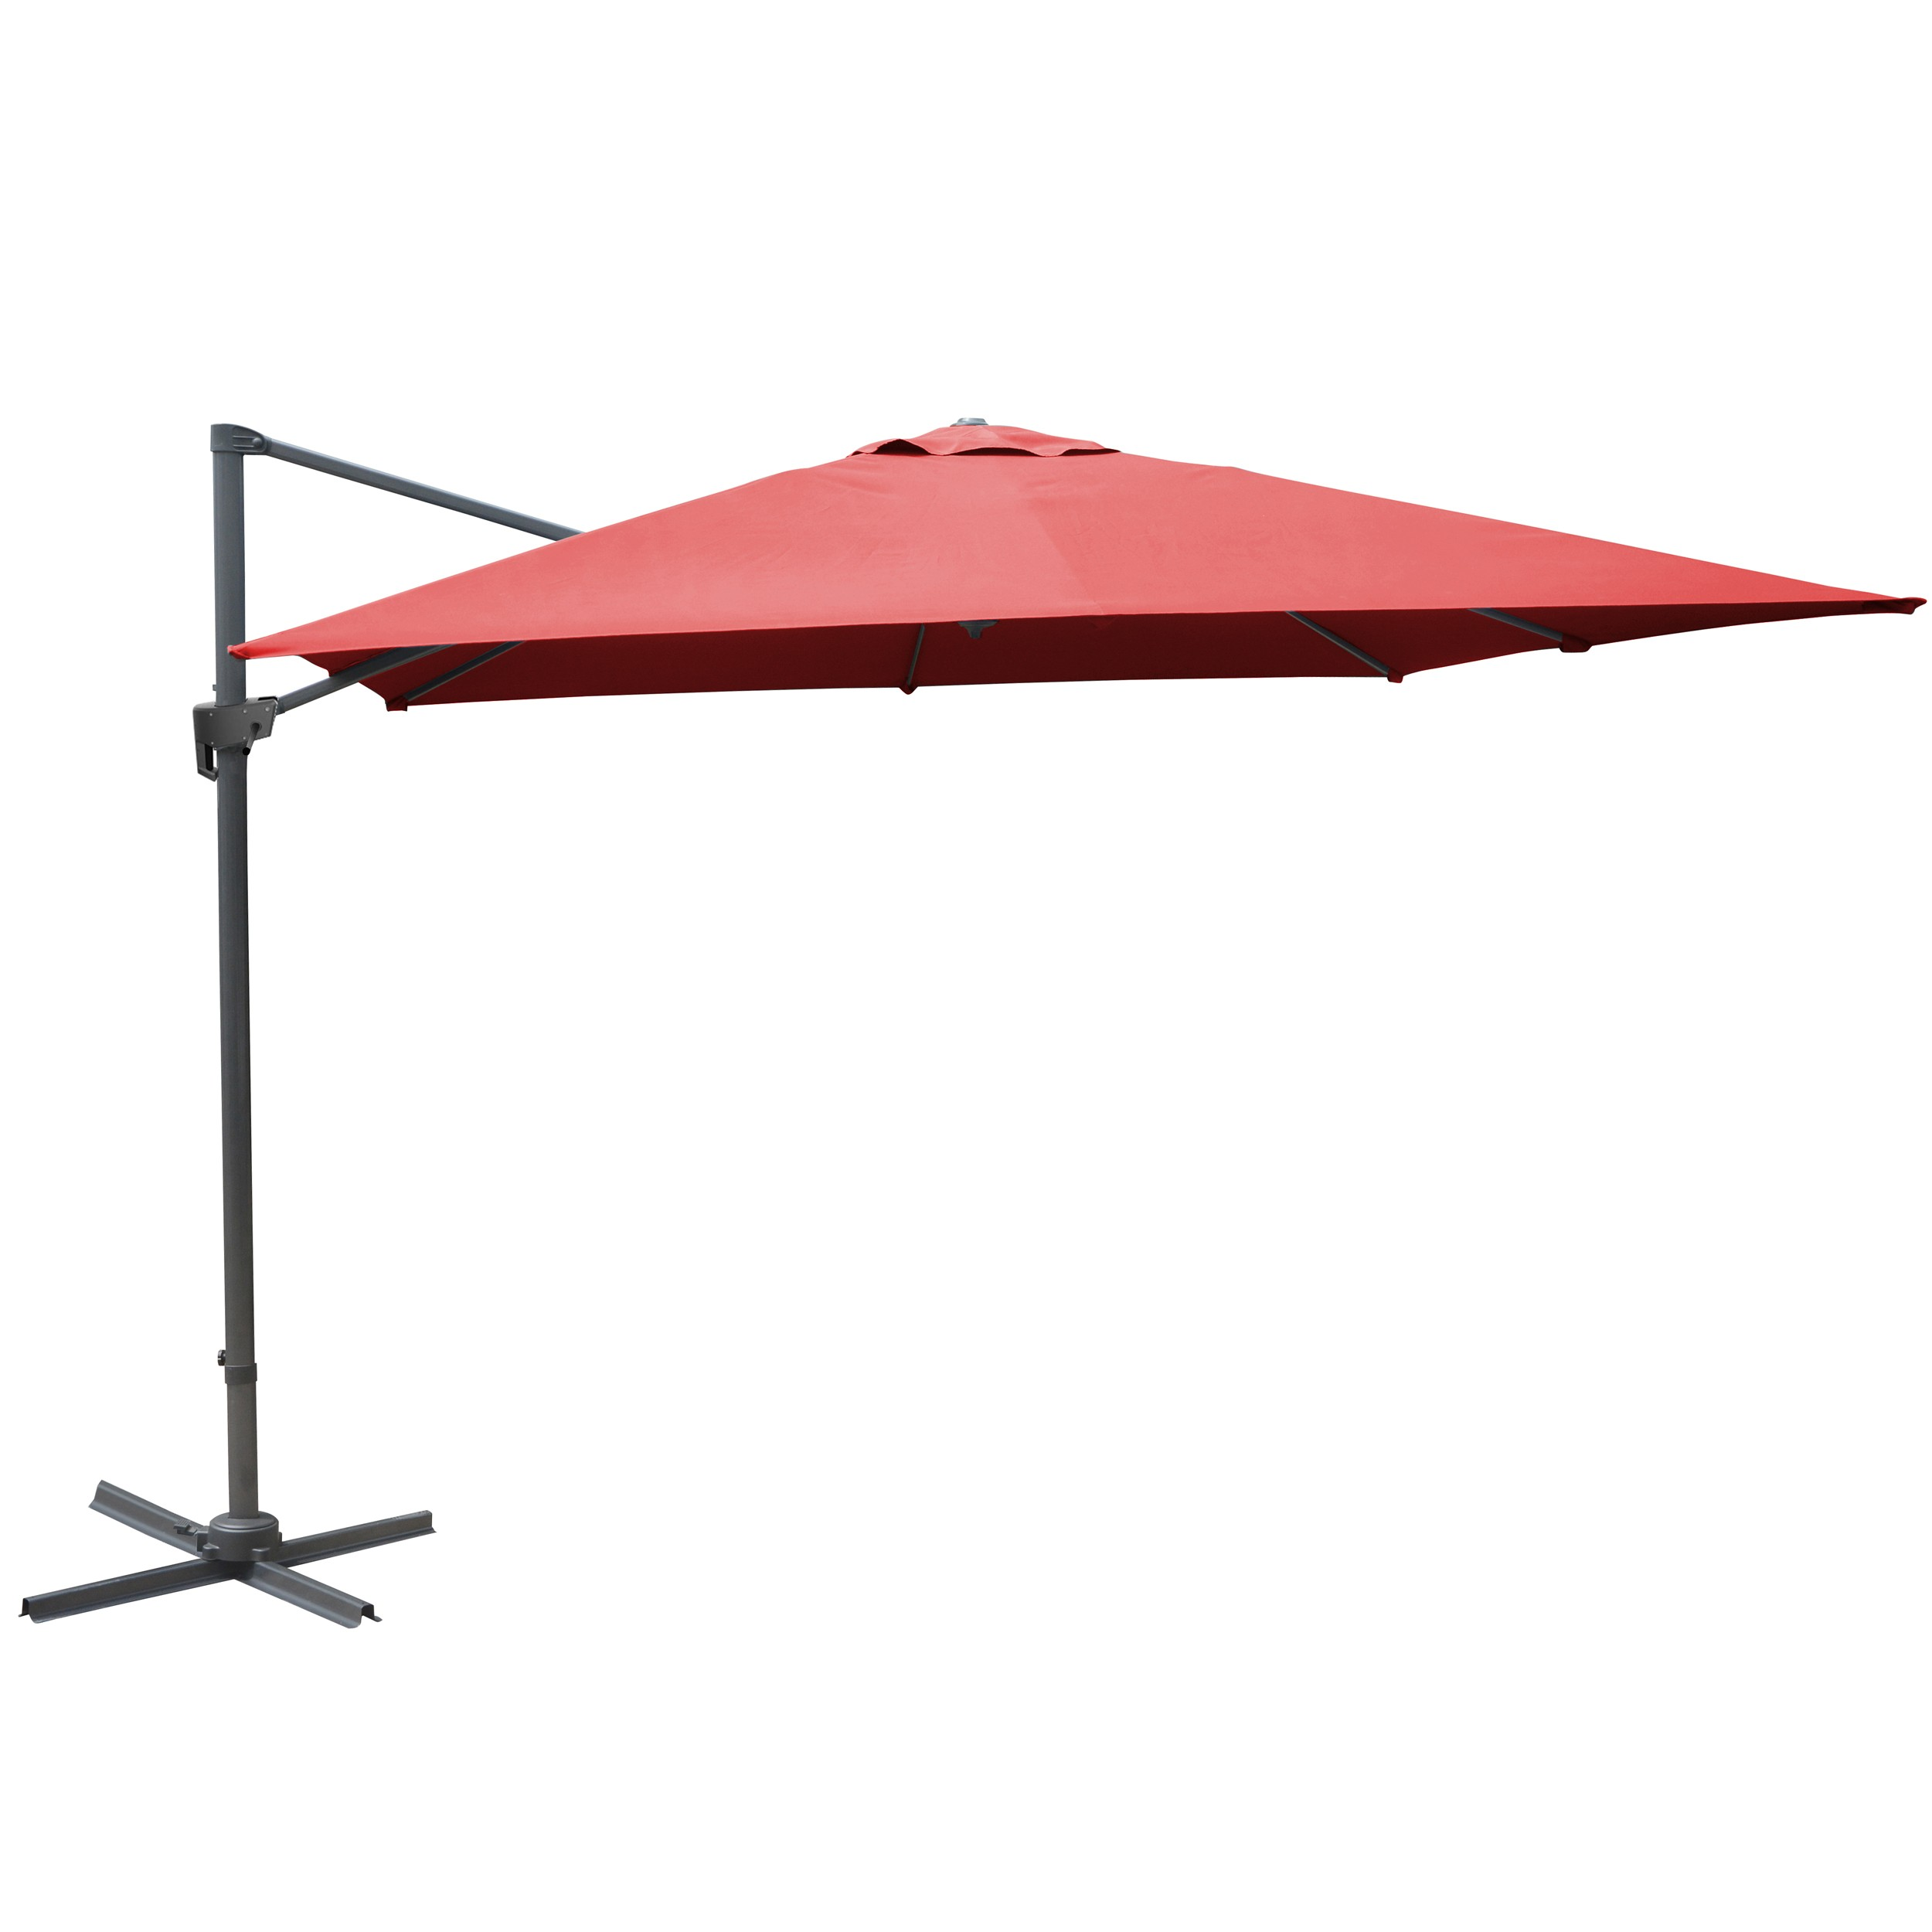 achat parasol rouge inclinable toile